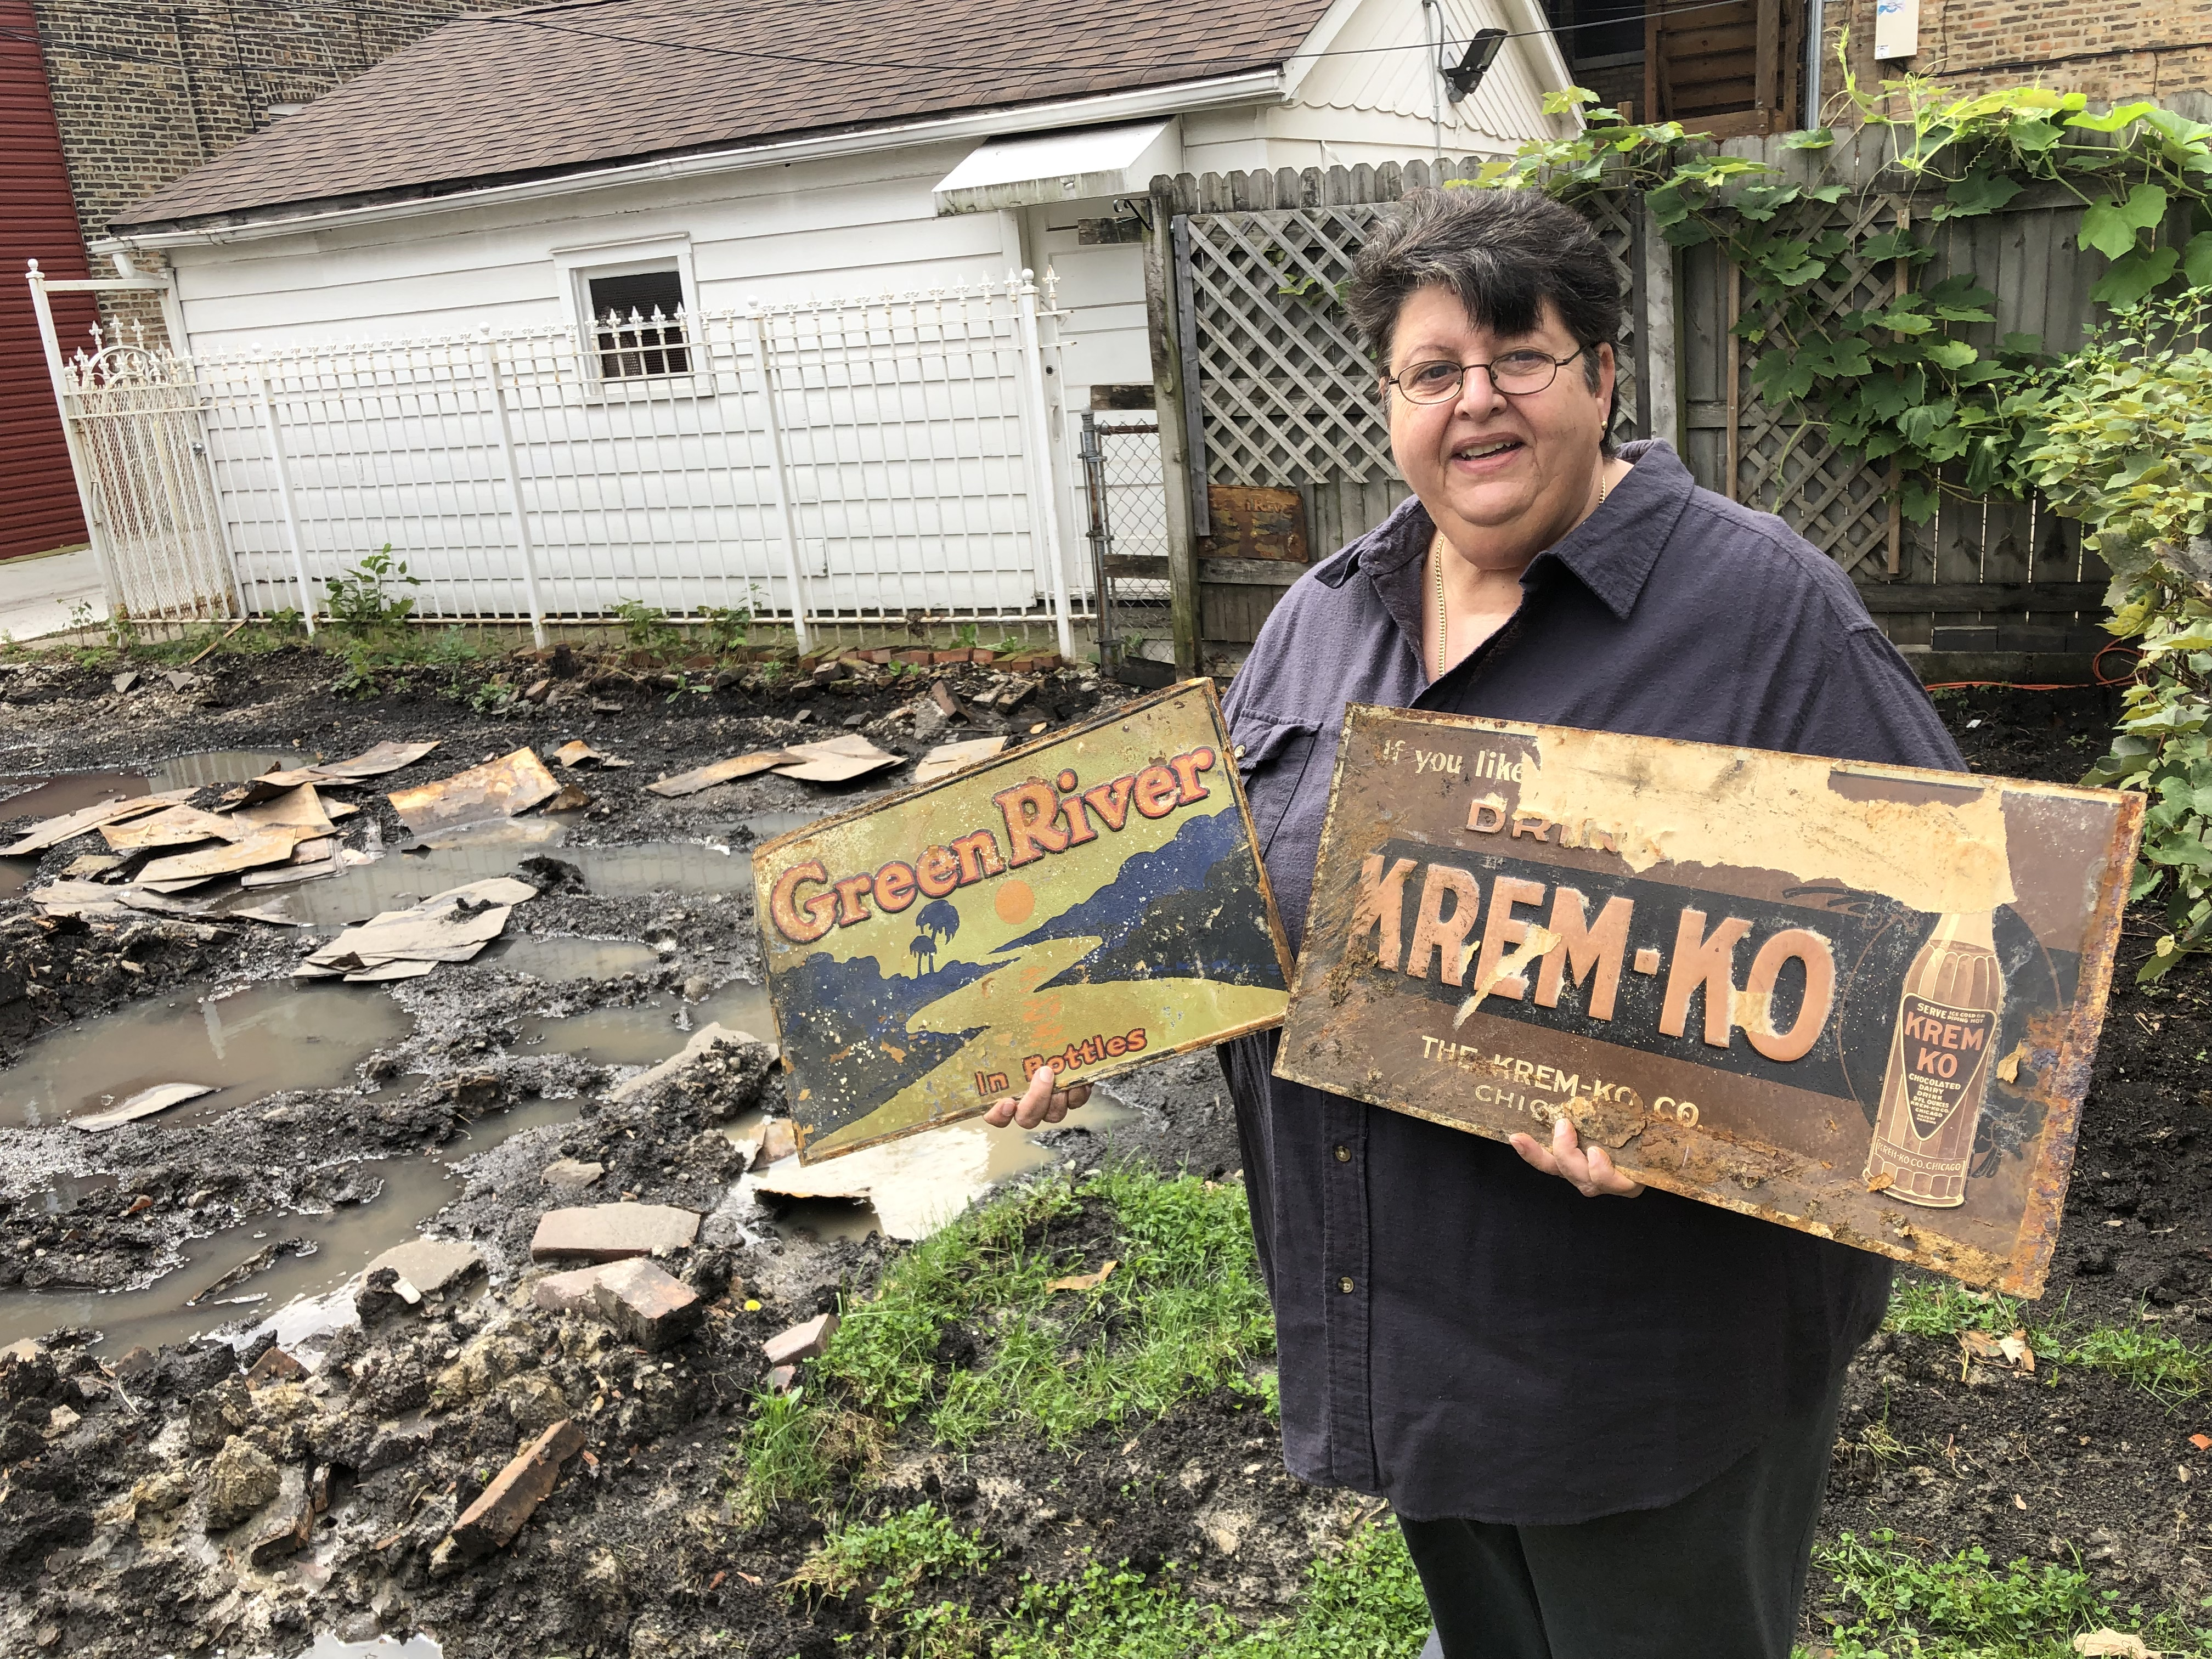 Soraya Zamora displays two of the old metal advertising signs she found under her garage.